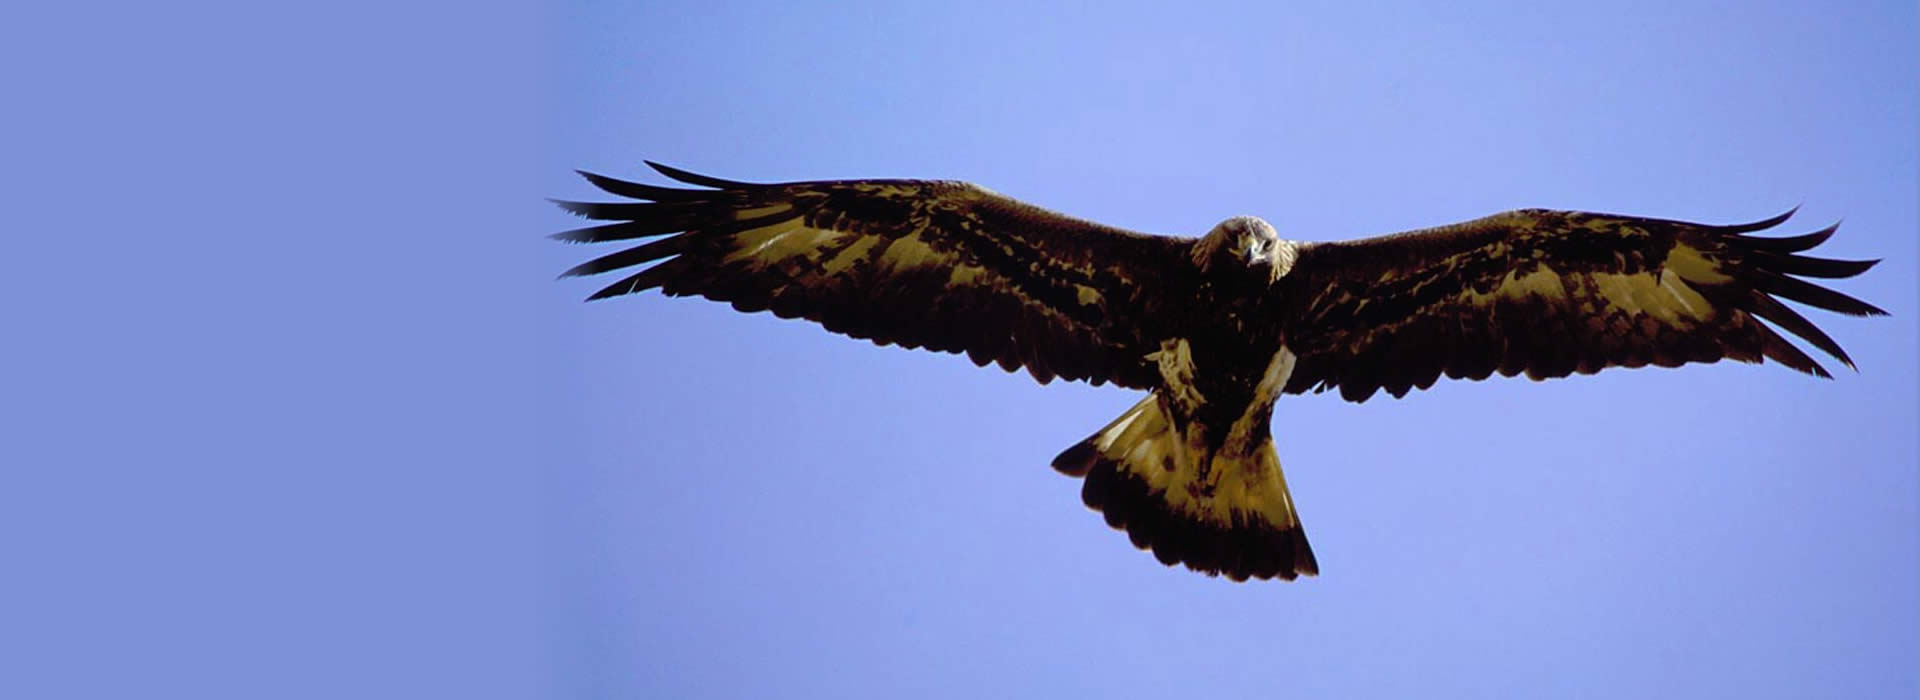 Close up of a soaring golden eagle